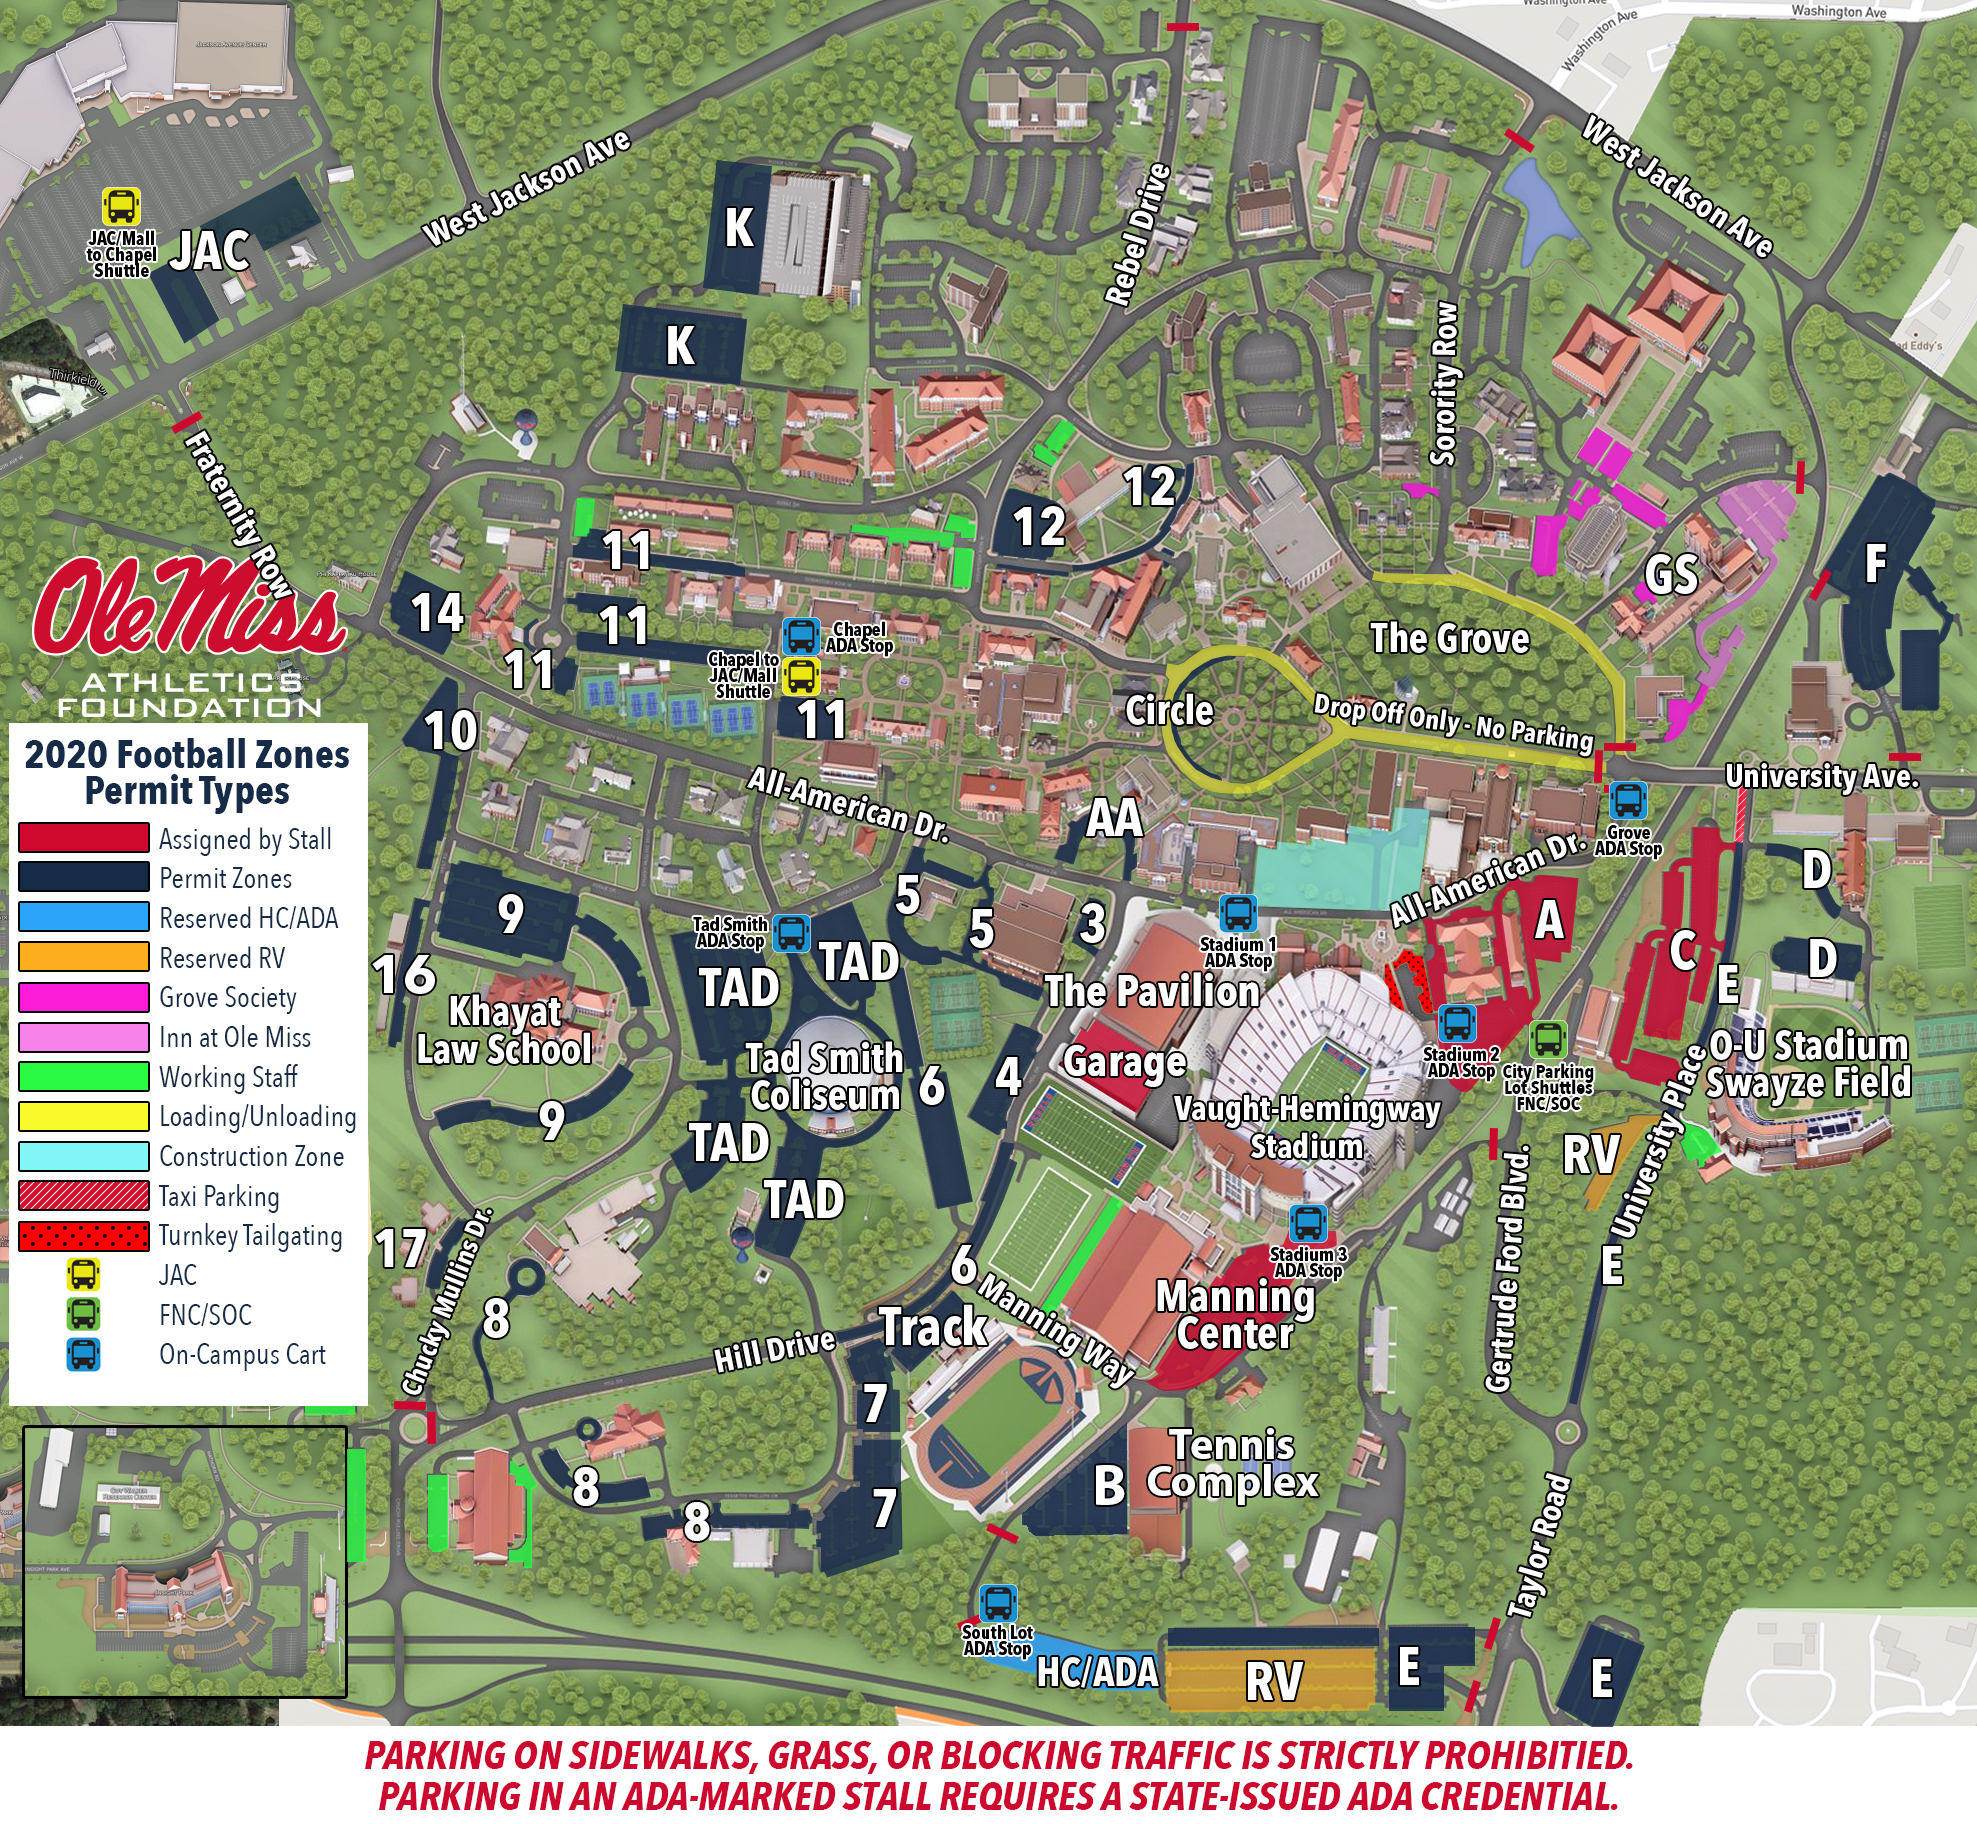 university of mississippi map Parking With A Pass Ole Miss Gamedays university of mississippi map